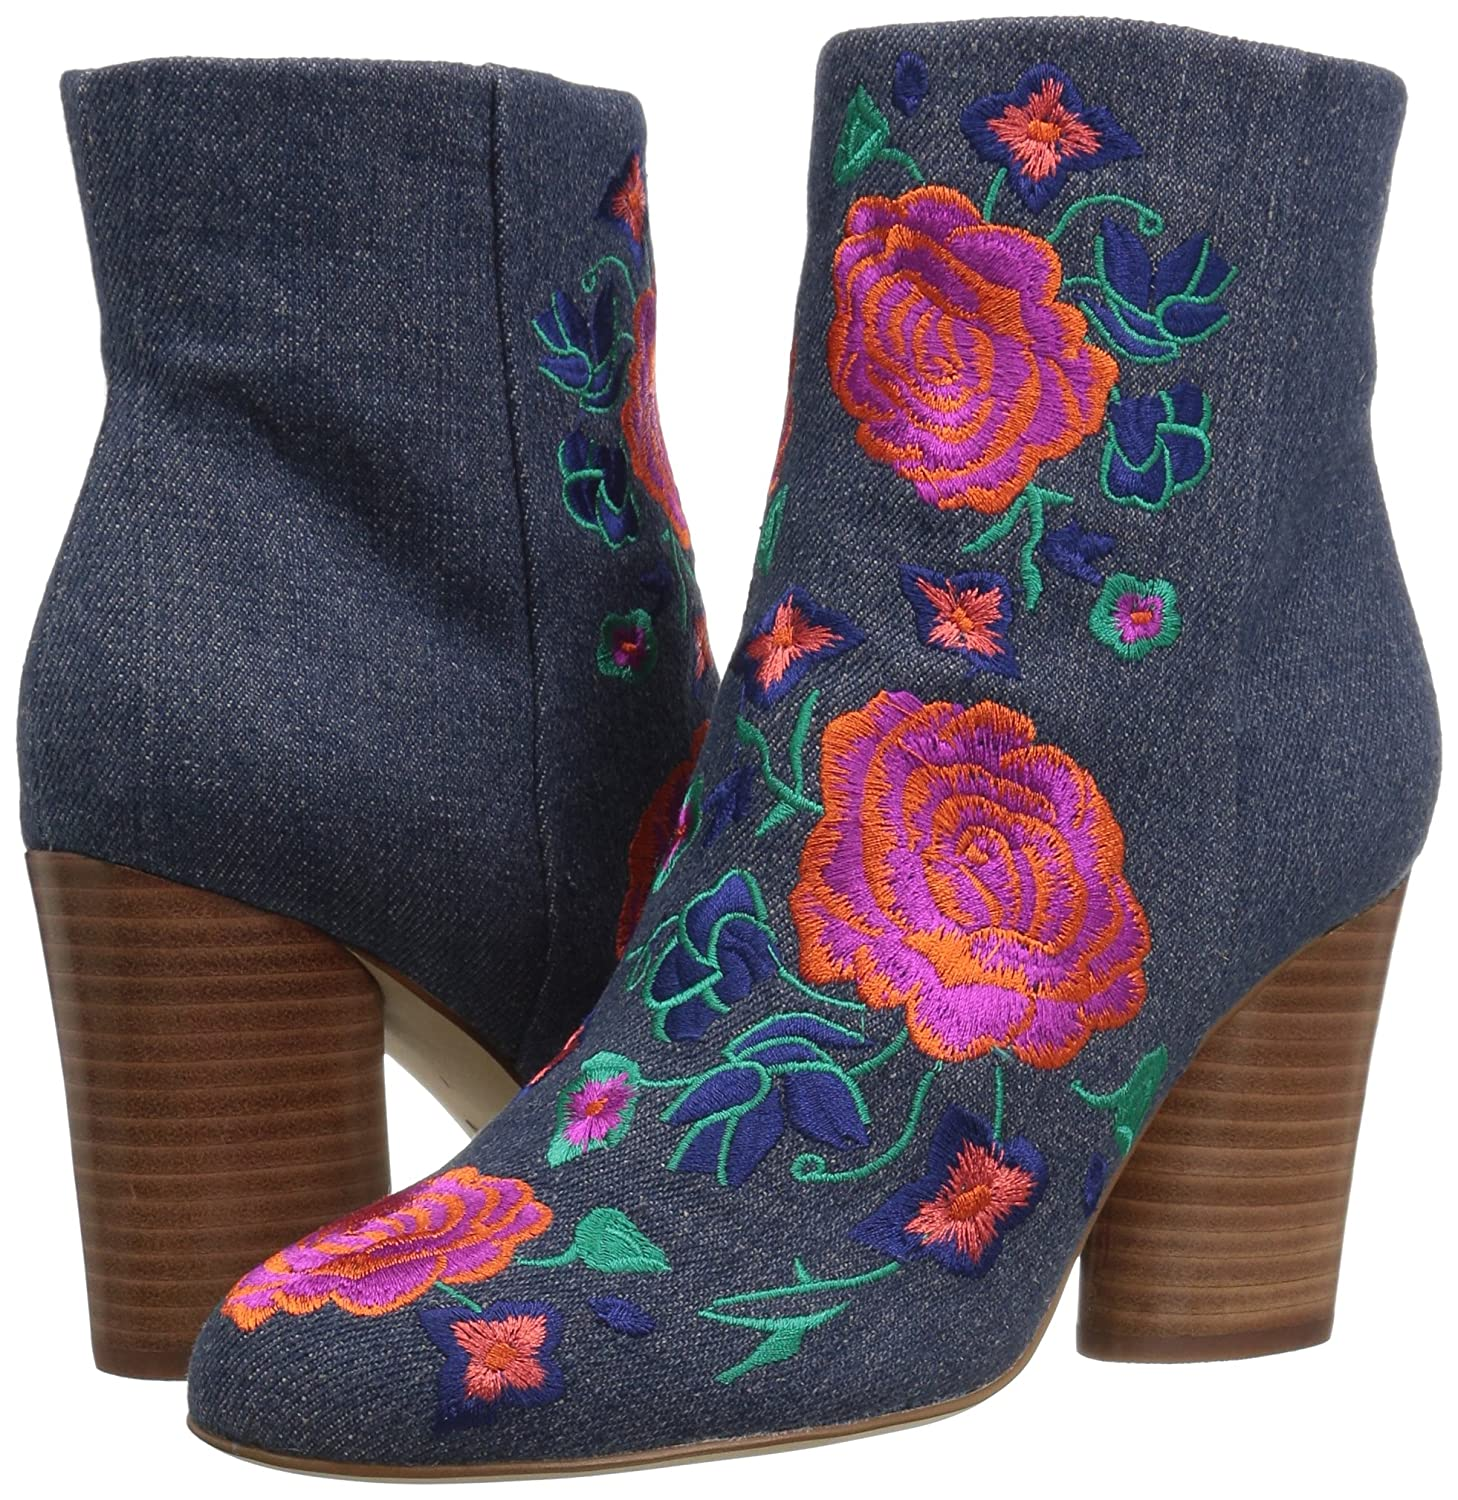 The Fix Women's Nash Floral Embroidery Oval Heel Ankle Bootie B01MZF94TC 8.5 B(M) US|Indigo